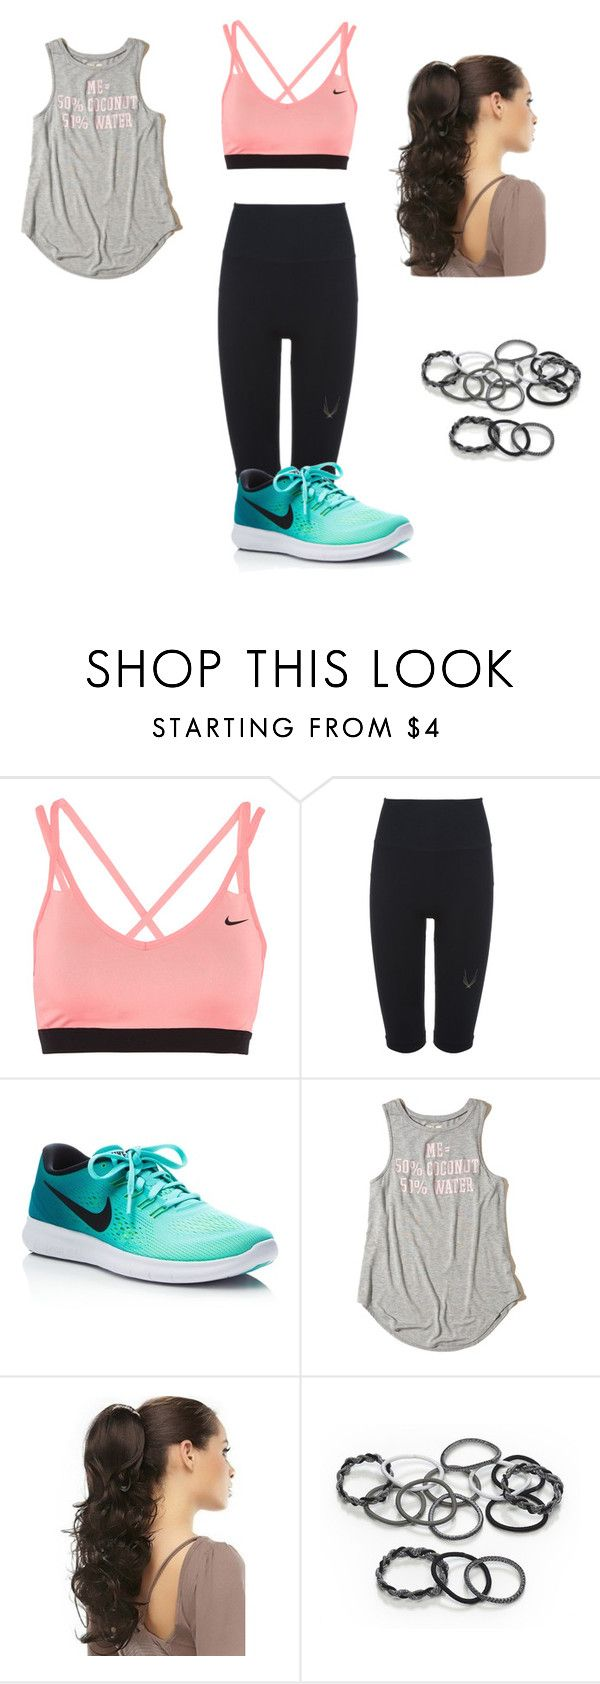 """""""sports for fashion"""" by trinity-athena ❤ liked on Polyvore featuring NIKE, Lucas Hugh, Hollister Co. and scunci"""